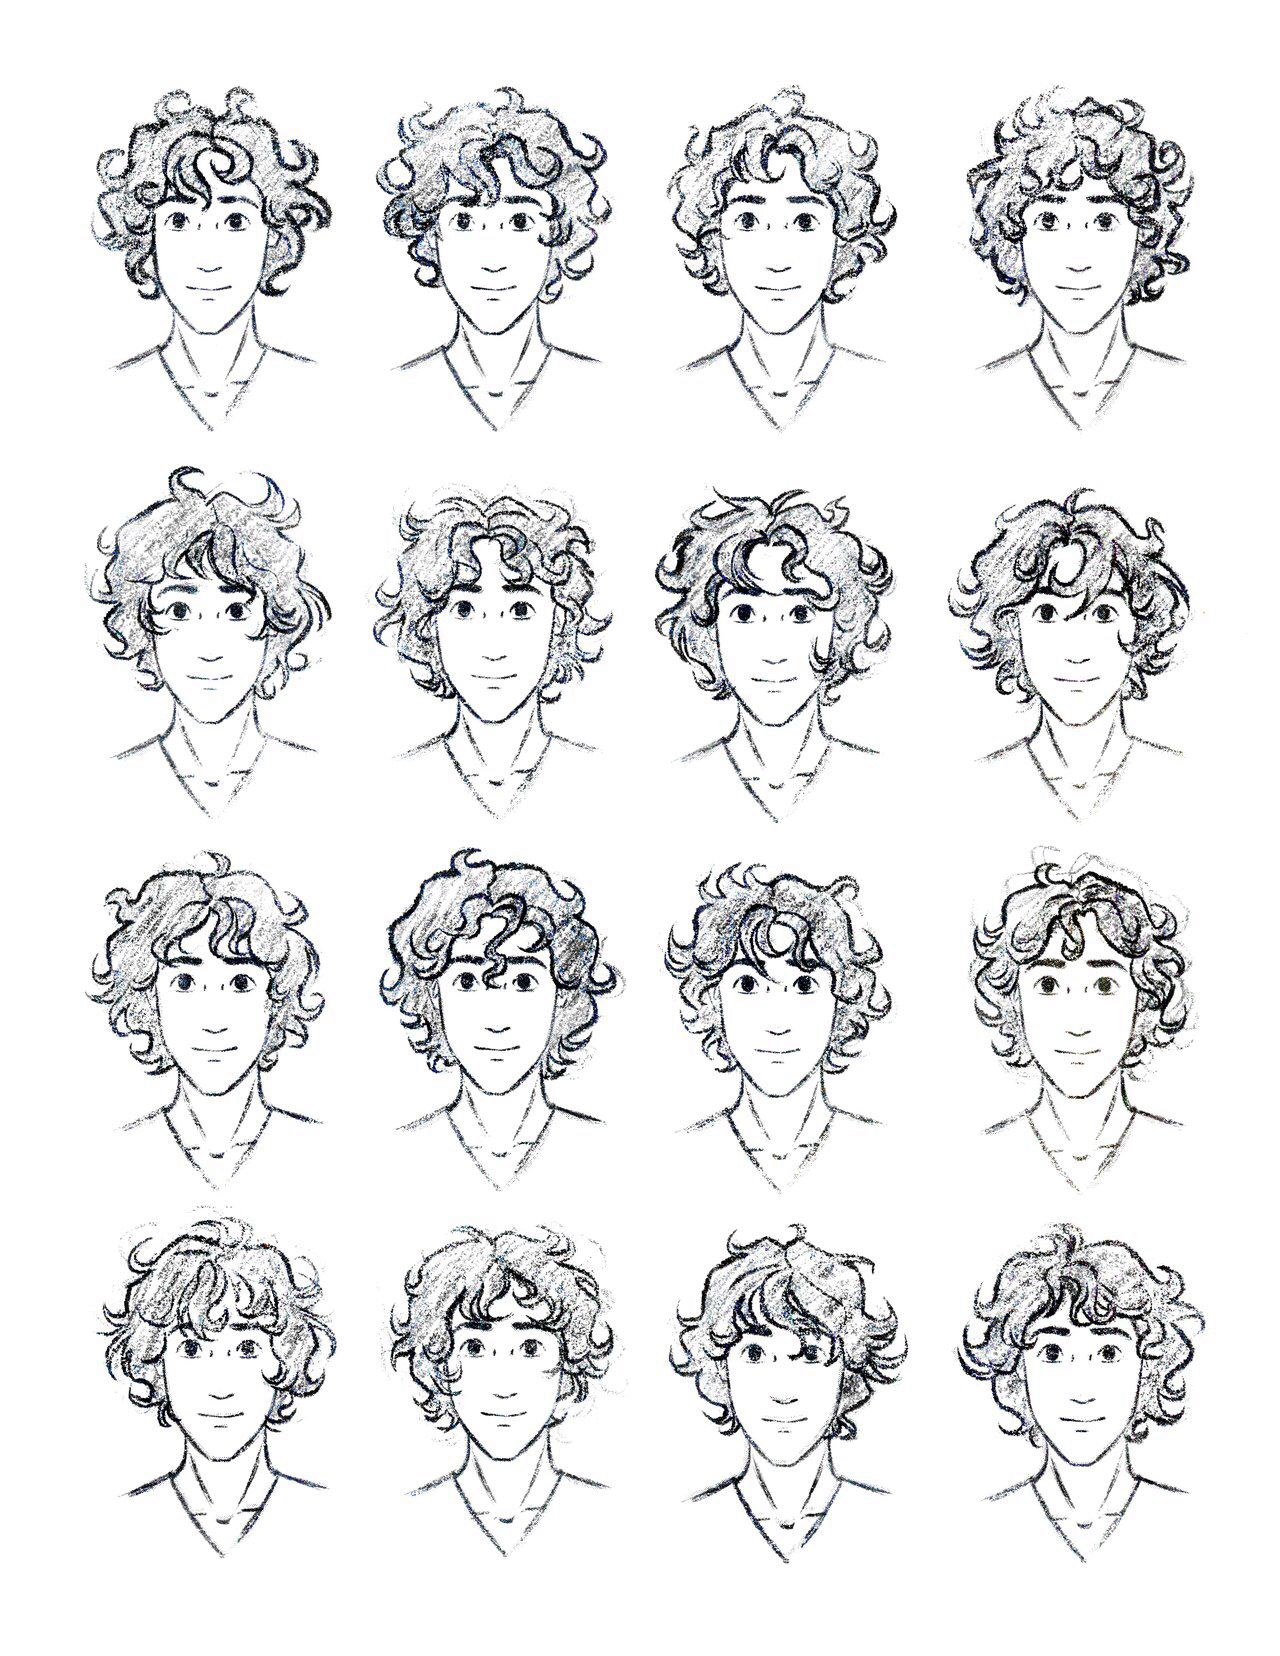 curly hair reference guys